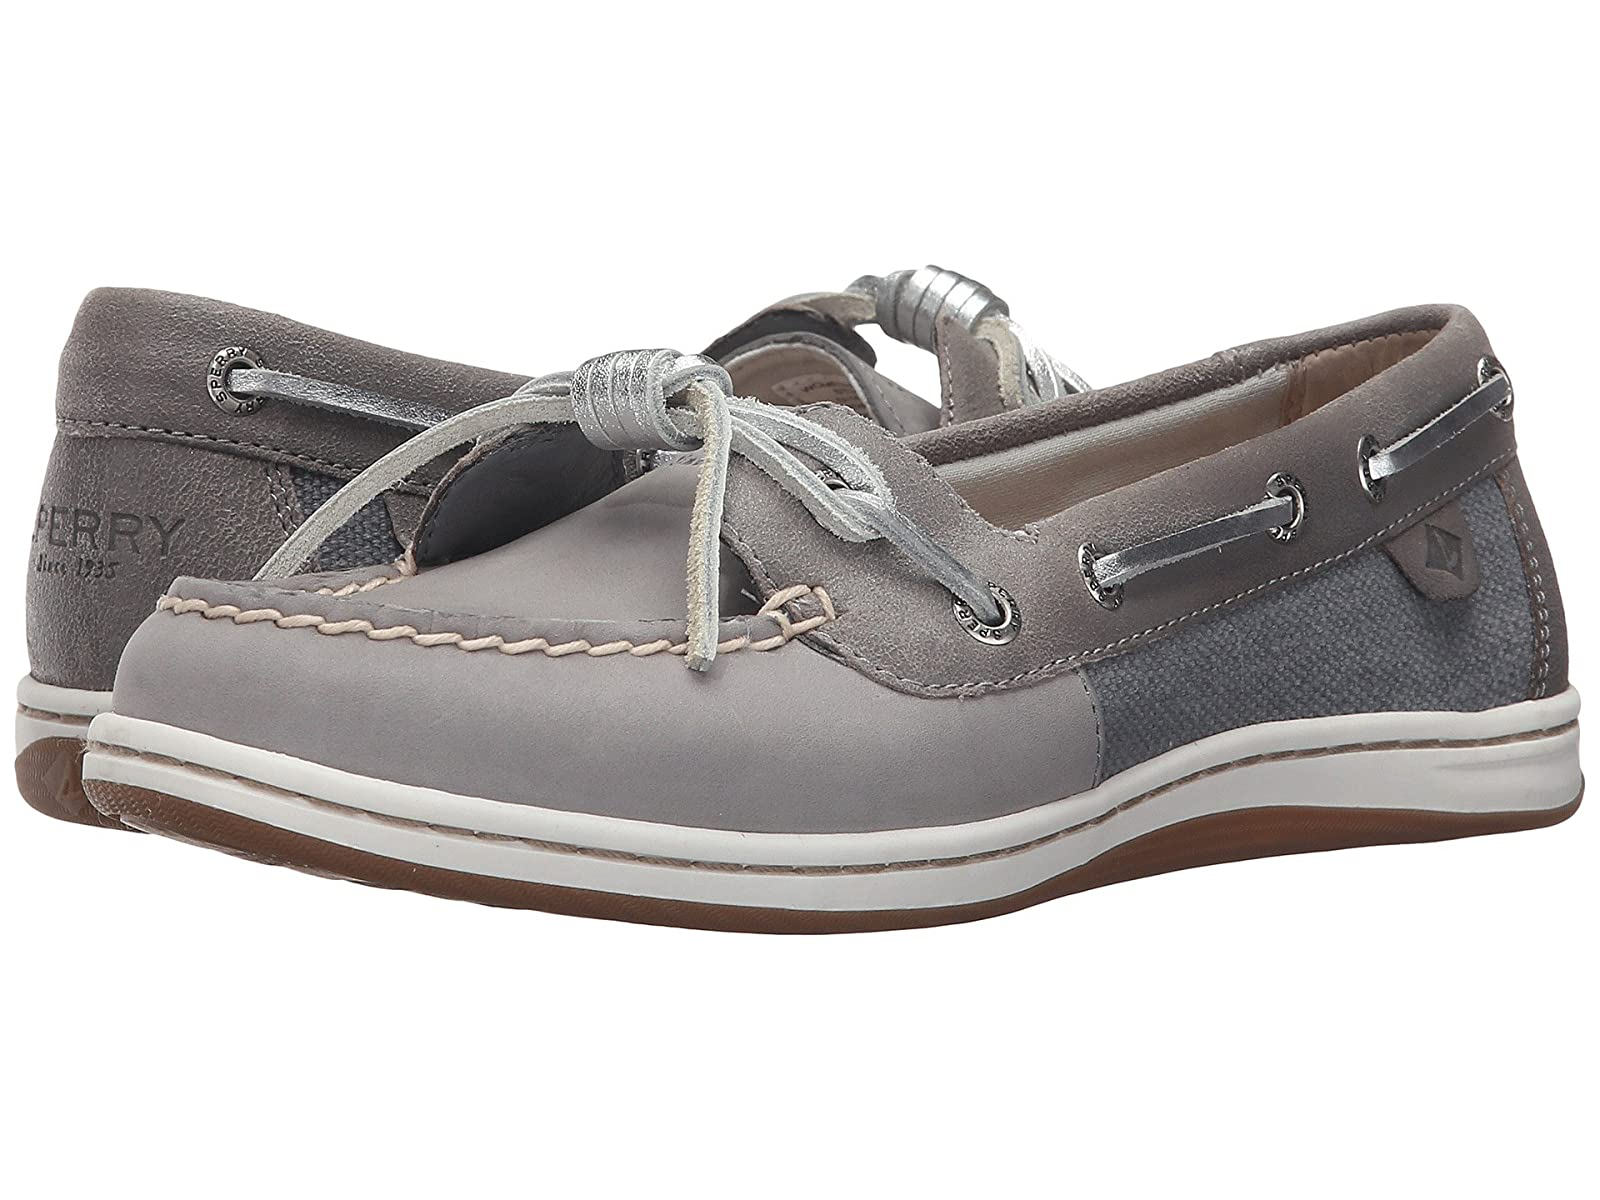 Sperry BarrelfishSelling fashionable and eye-catching shoes